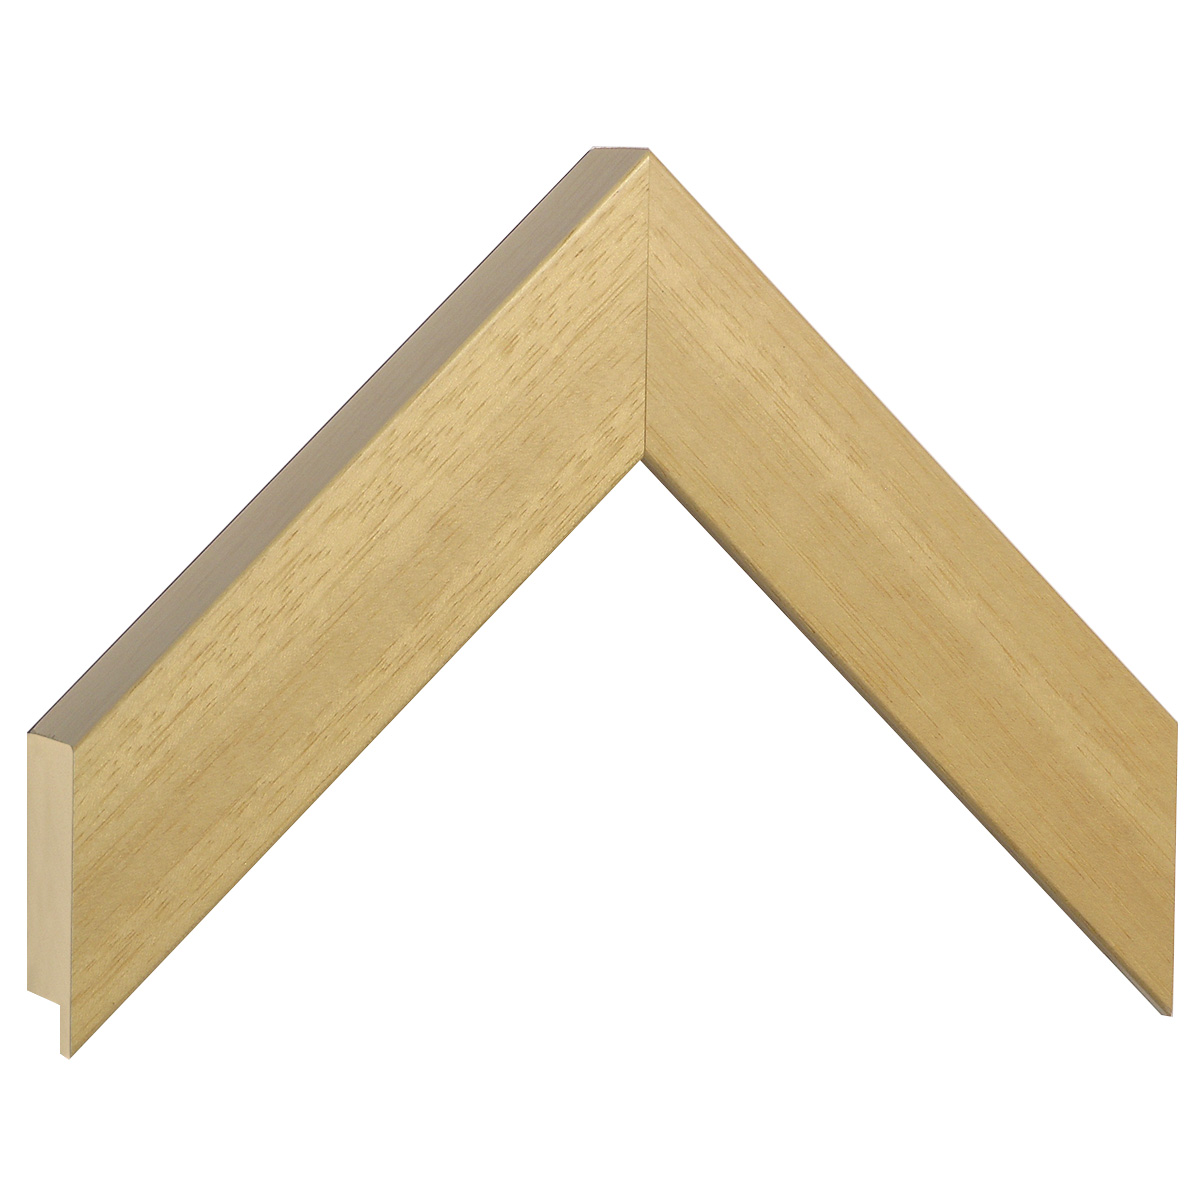 Moulding ayous, width 40mm height 32 - natural wood